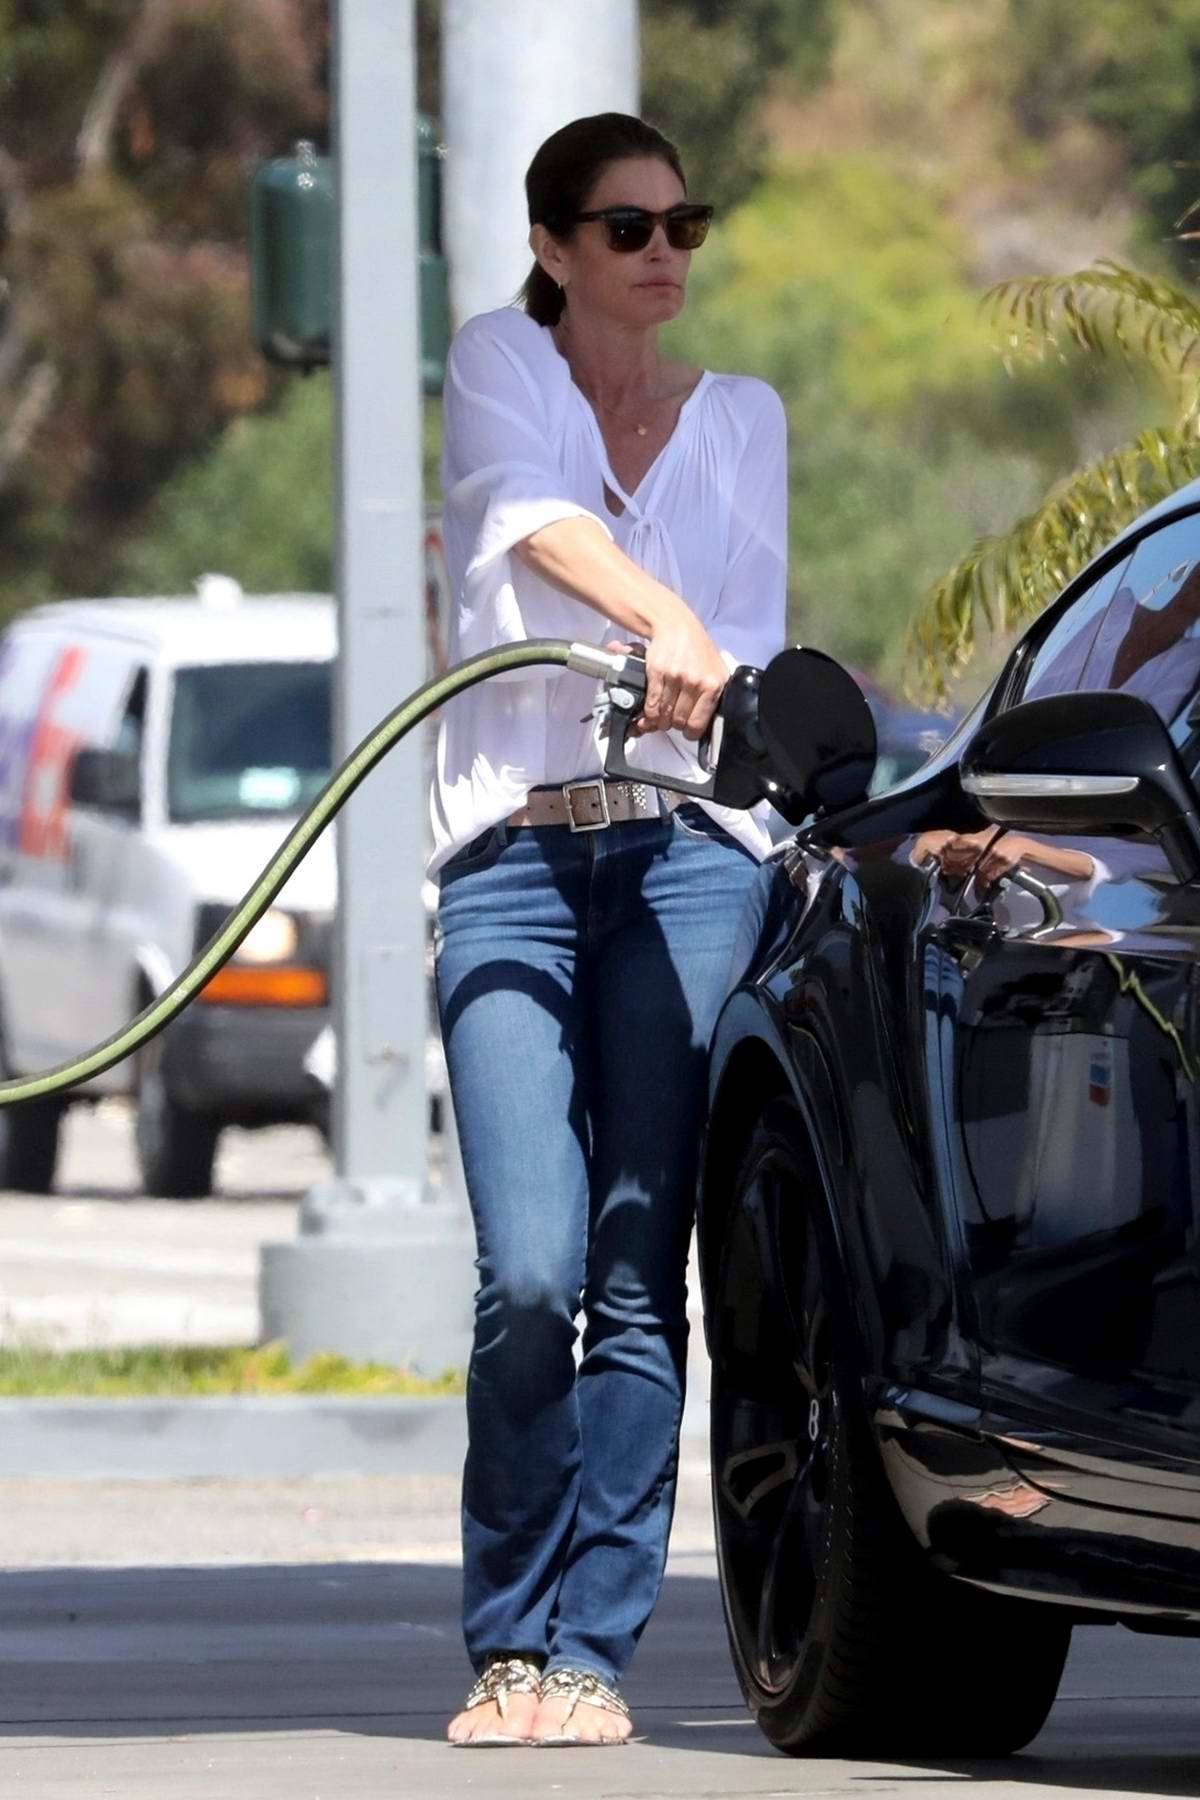 Cindy Crawford spotted in a white blouse and blue jeans as she stops by at a gas station to fill her car in Malibu, California